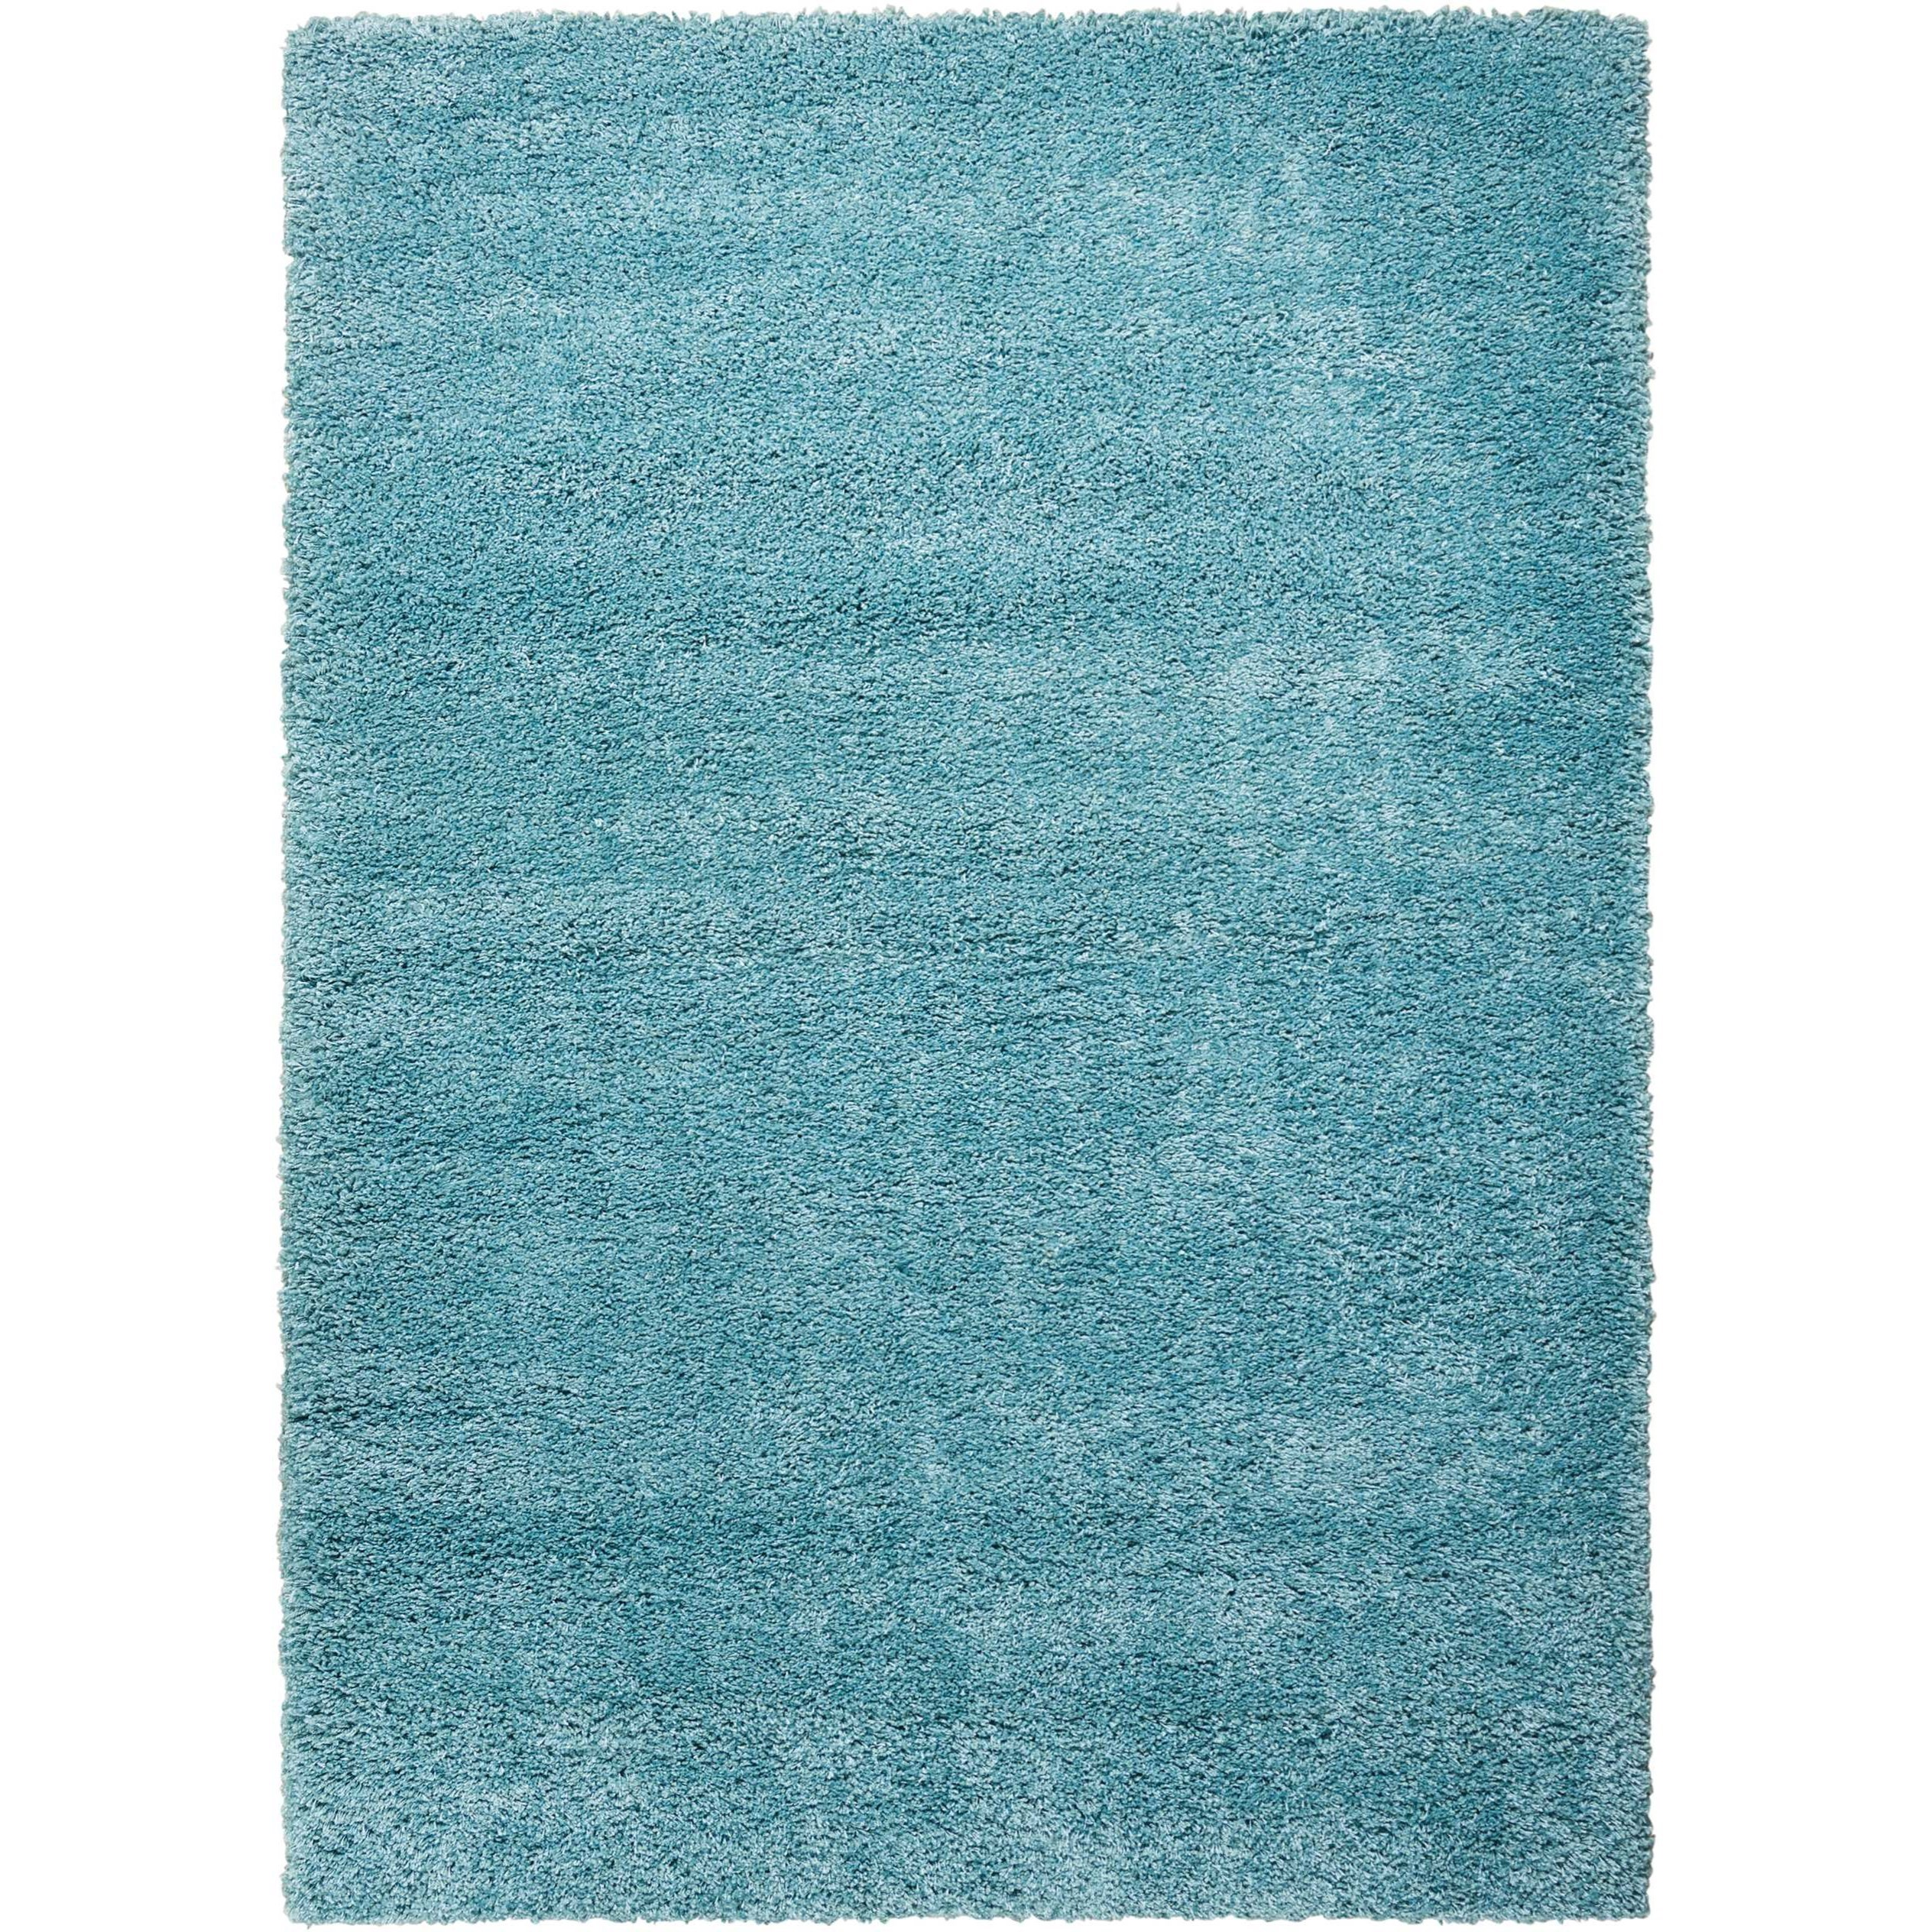 Amore Amore AMOR1 Blue 4'x6' Area Rug by Nourison at Home Collections Furniture